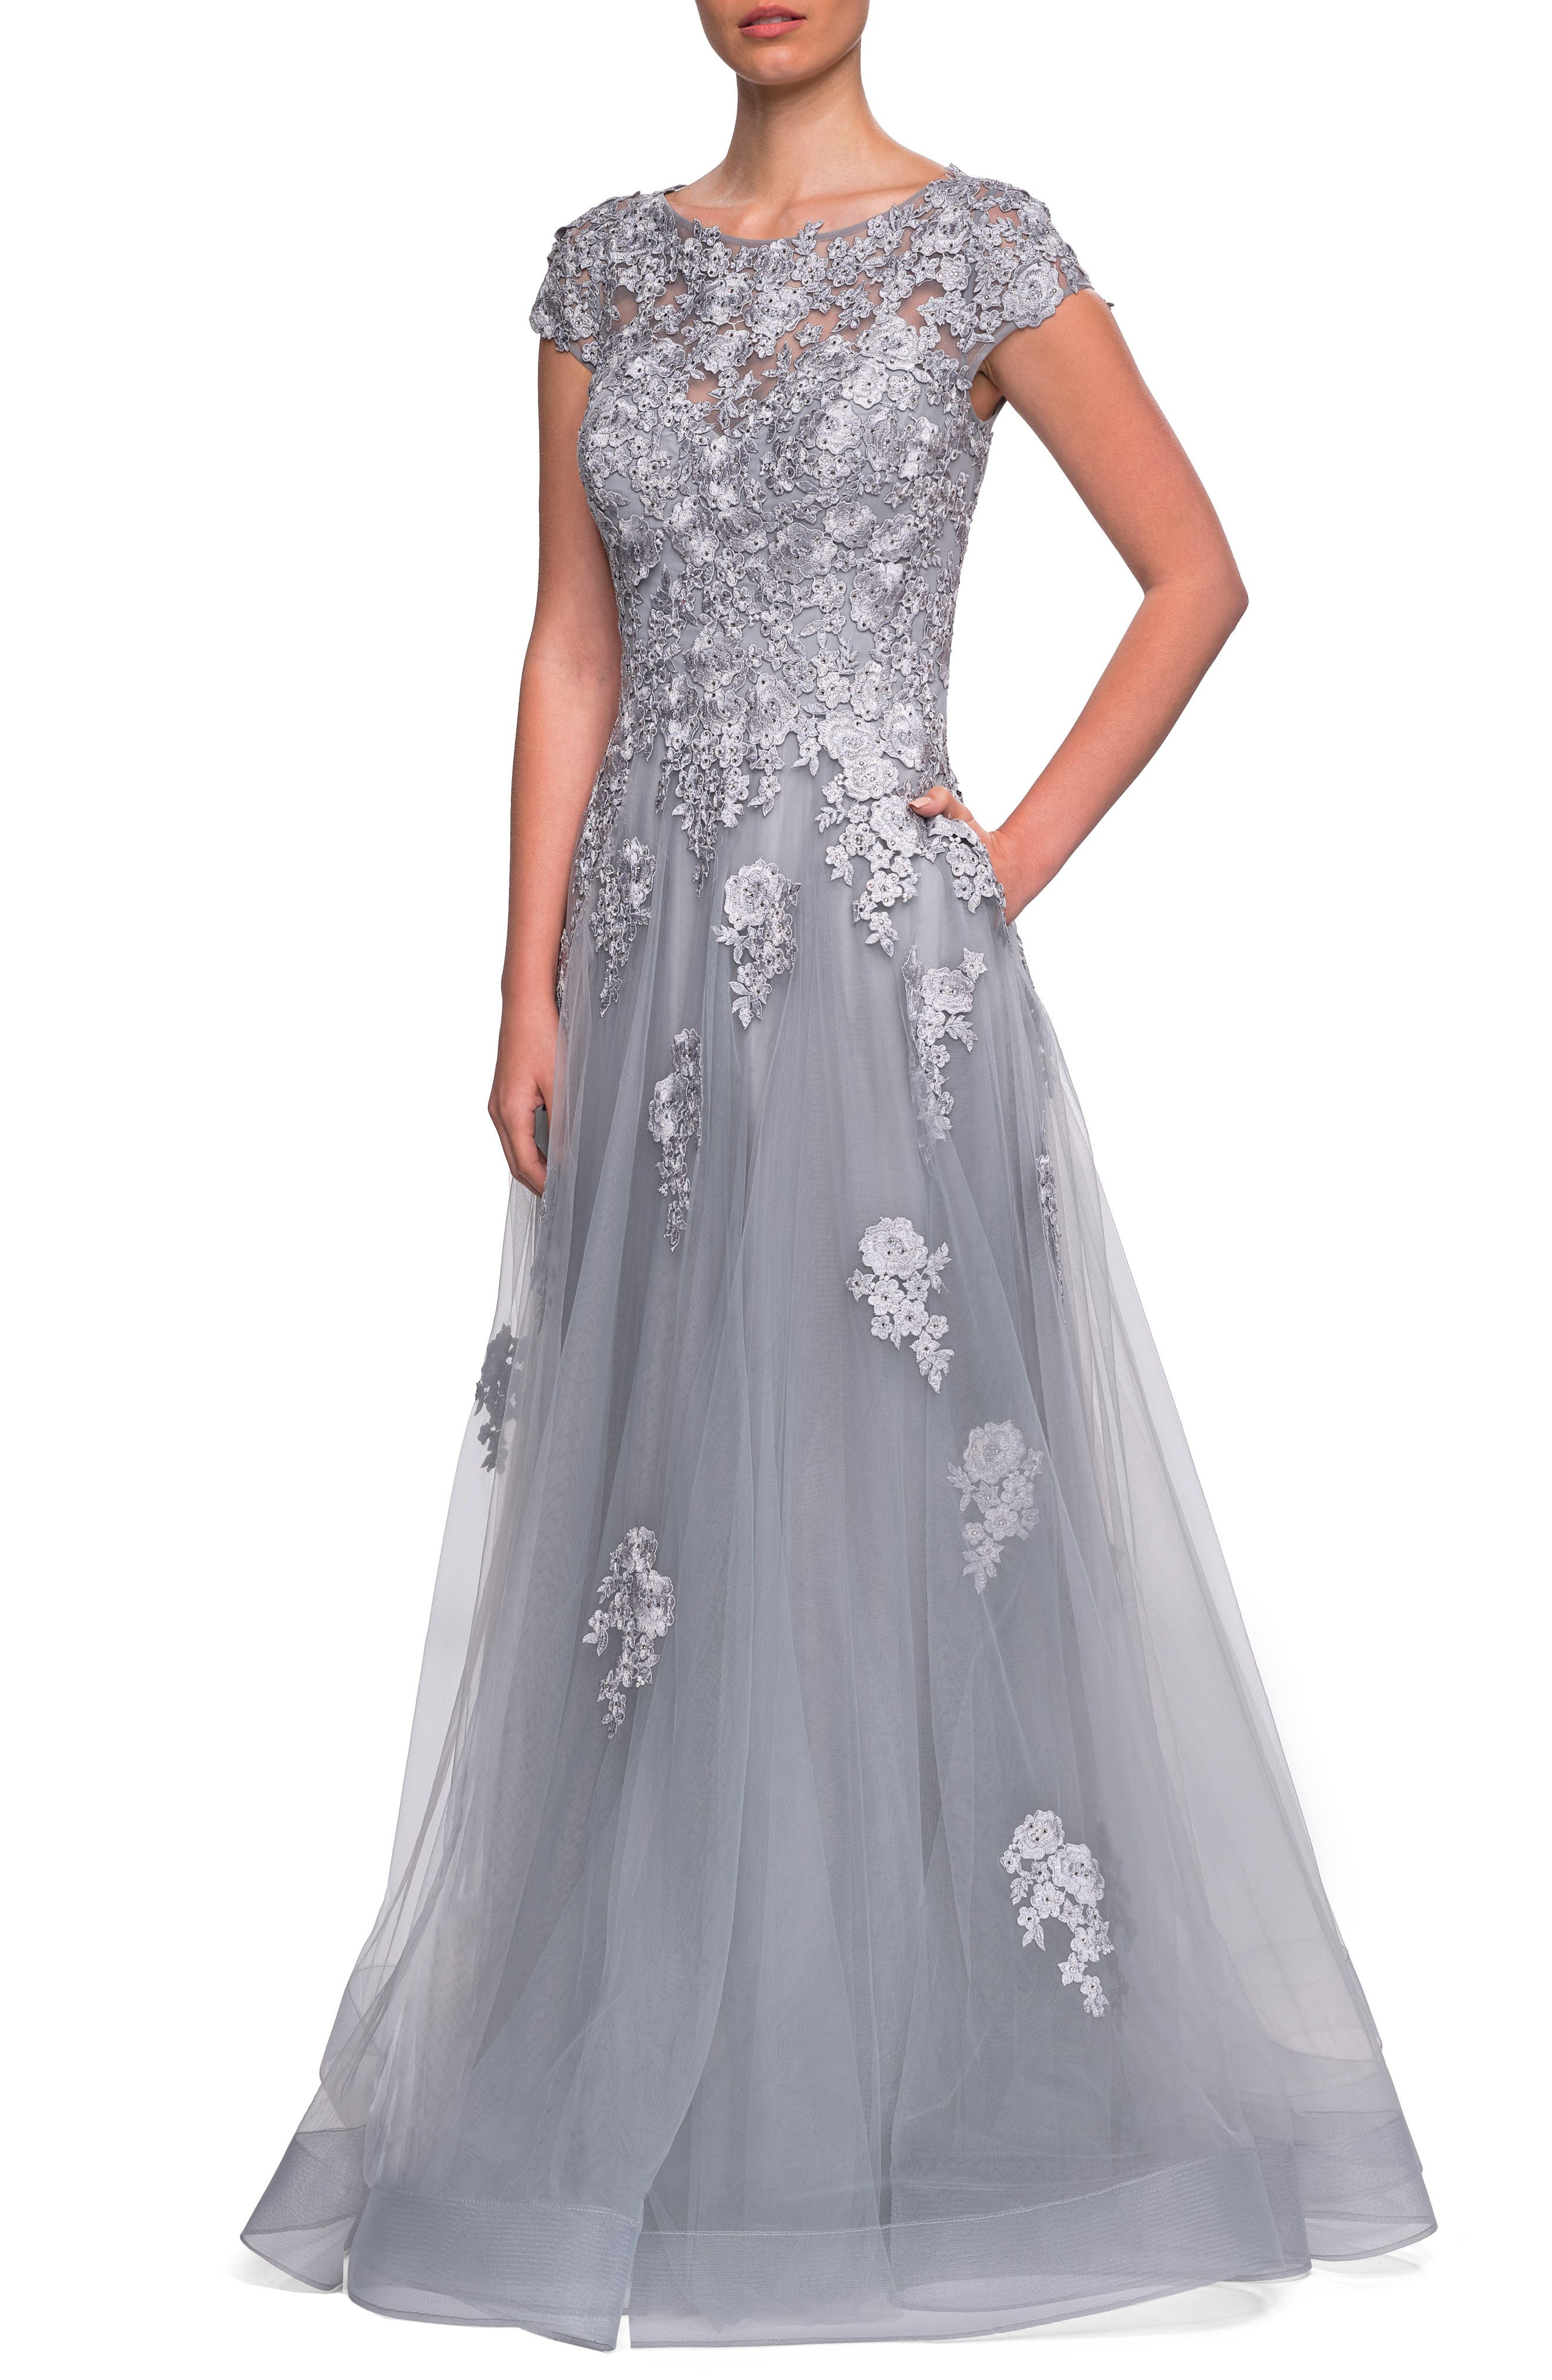 1940s Evening, Prom, Party, Formal, Ball Gowns Womens La Femme Embellished Mesh A-Line Gown Size 20 - Grey $578.00 AT vintagedancer.com